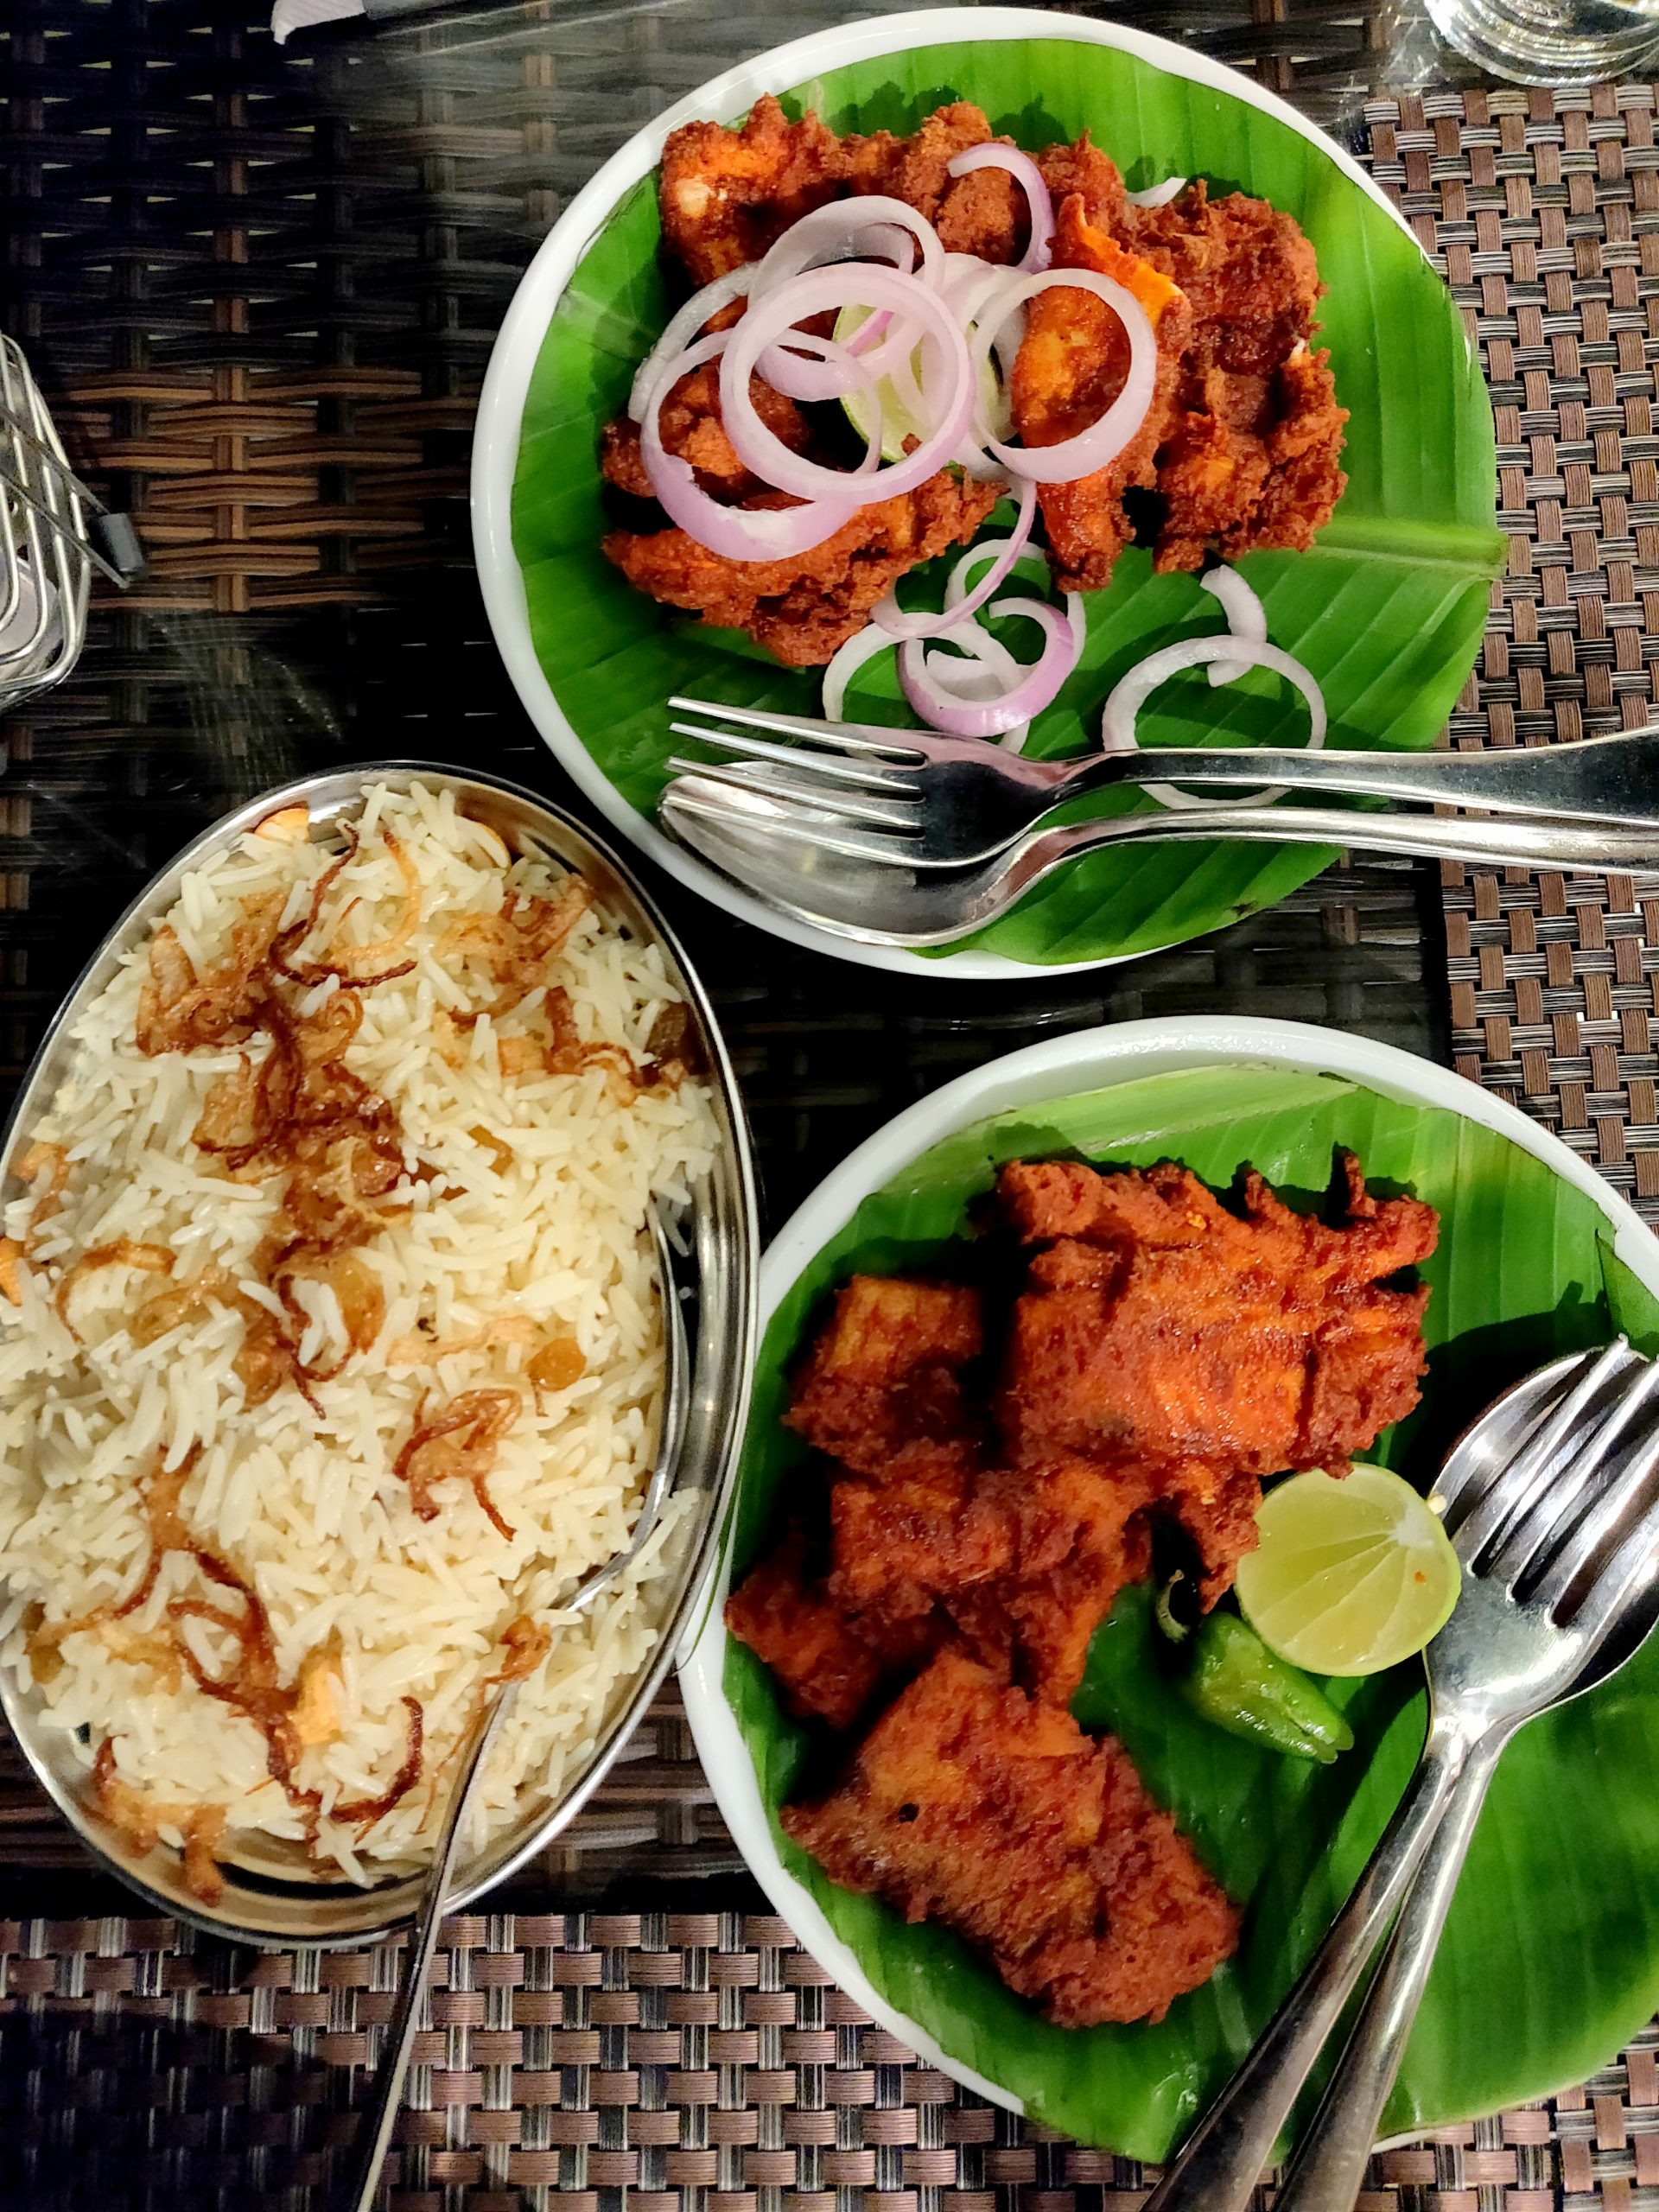 Binge on the delicious Malabari cuisine!